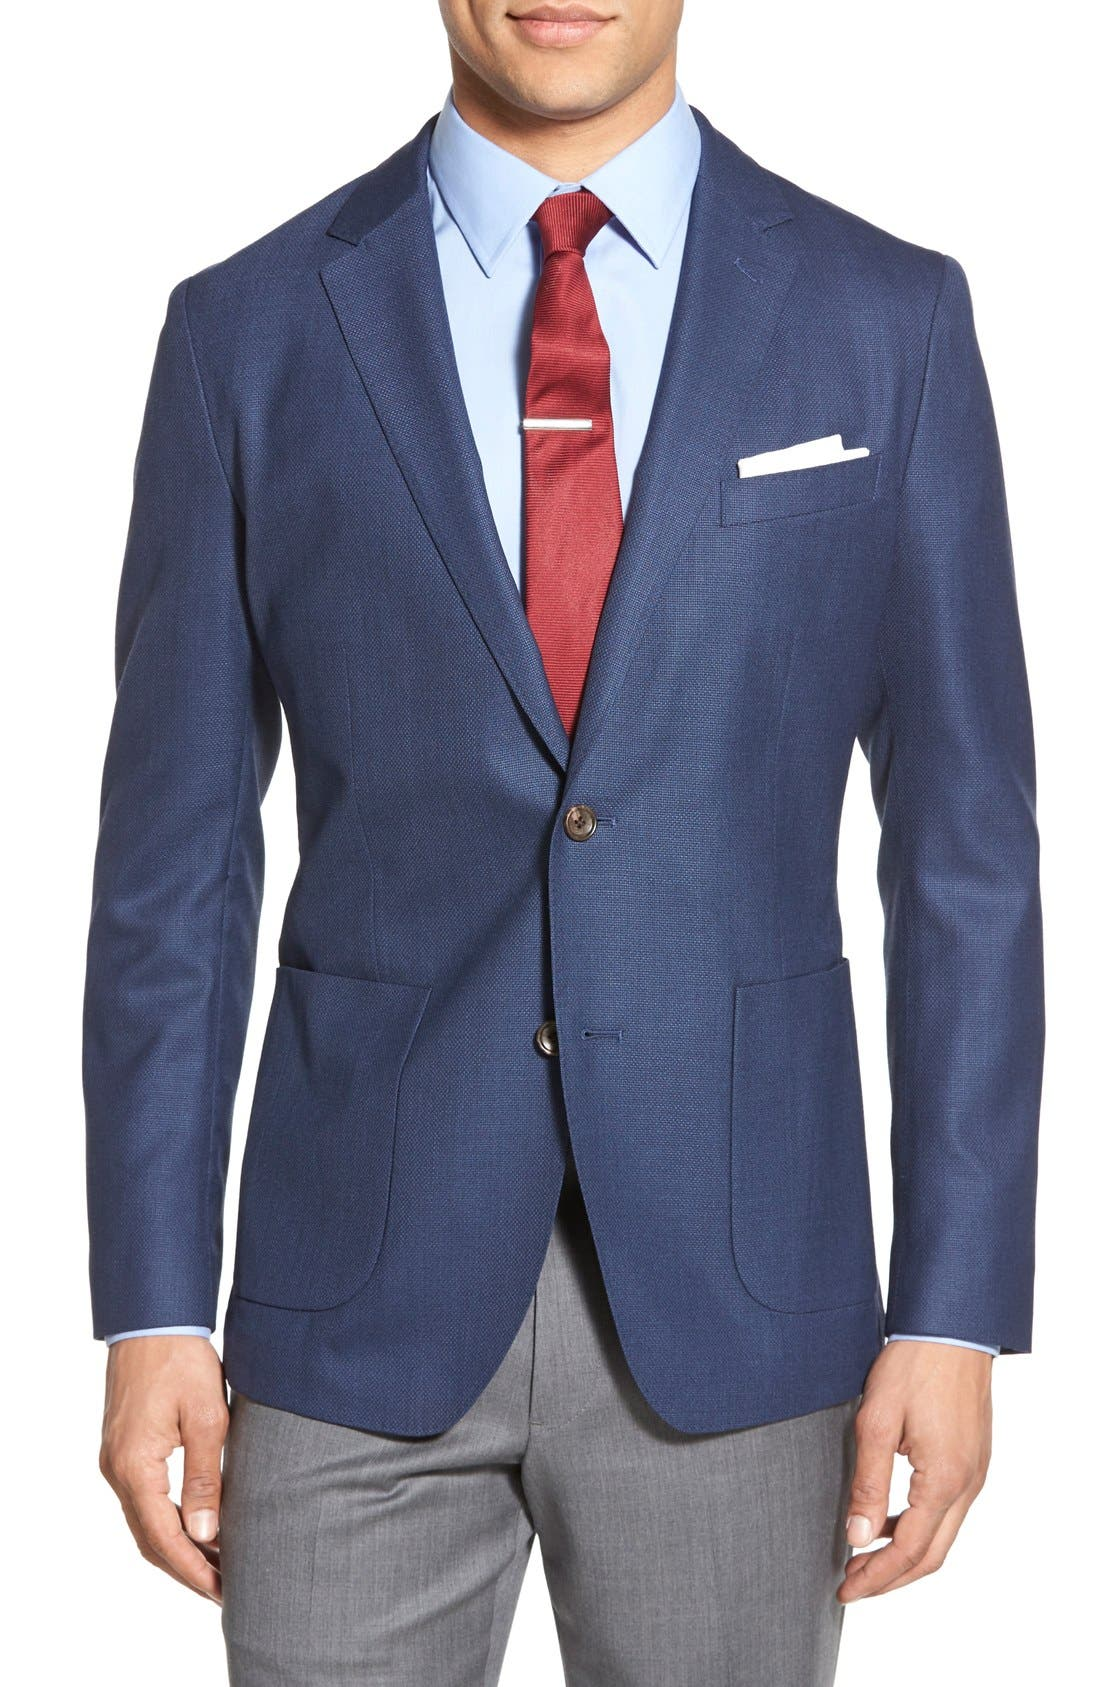 Main Image - Bonobos Knit Wool Sport Coat